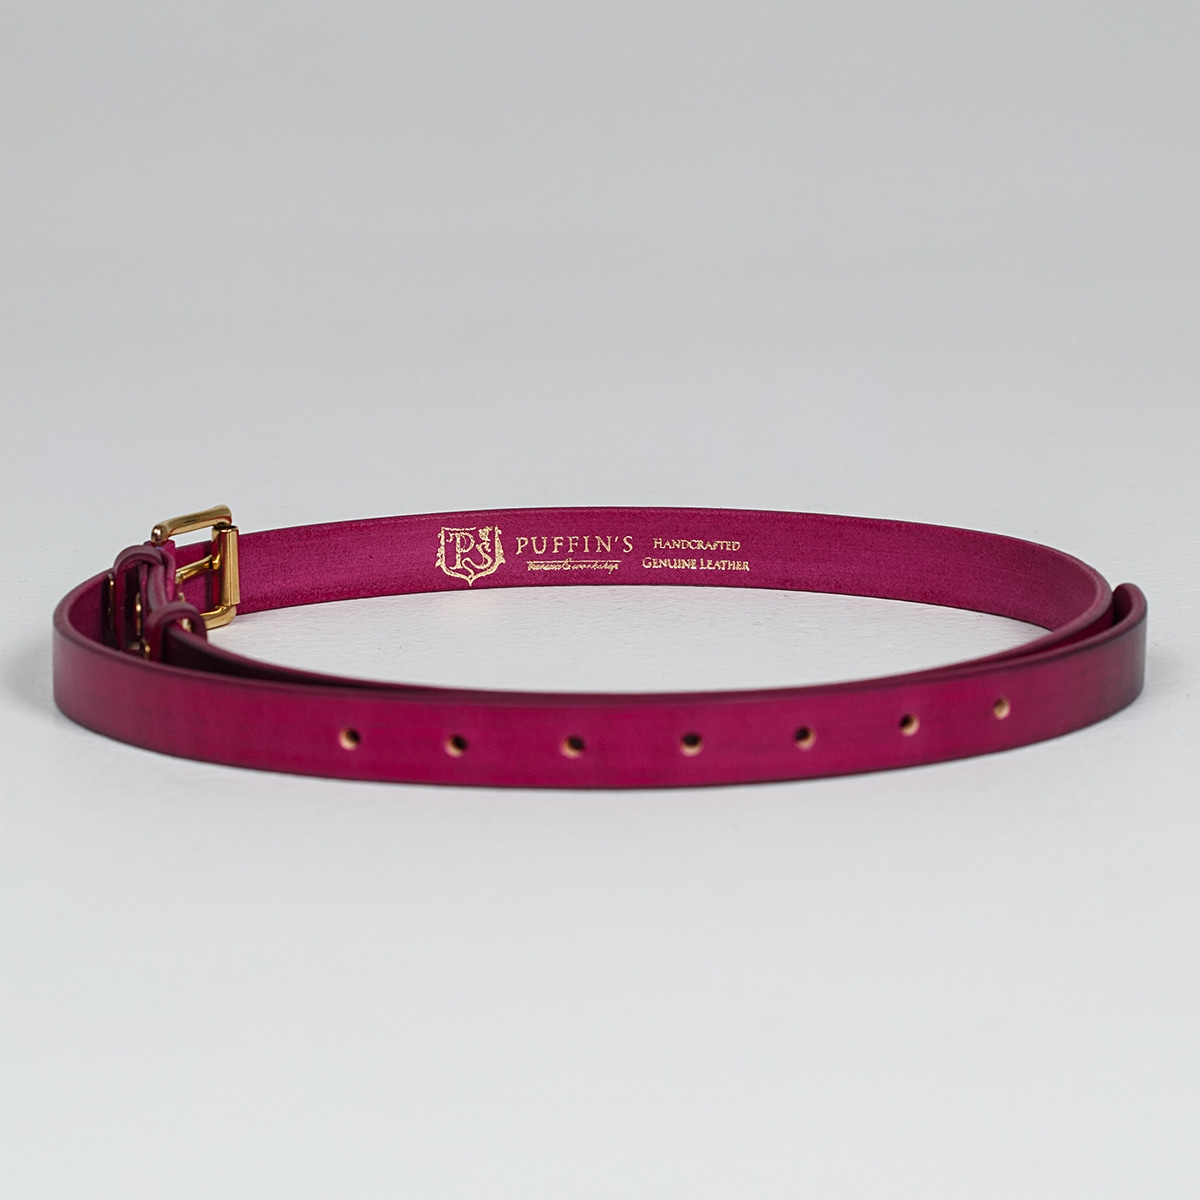 An exquisite 20mm belt with a brass buckle magenta